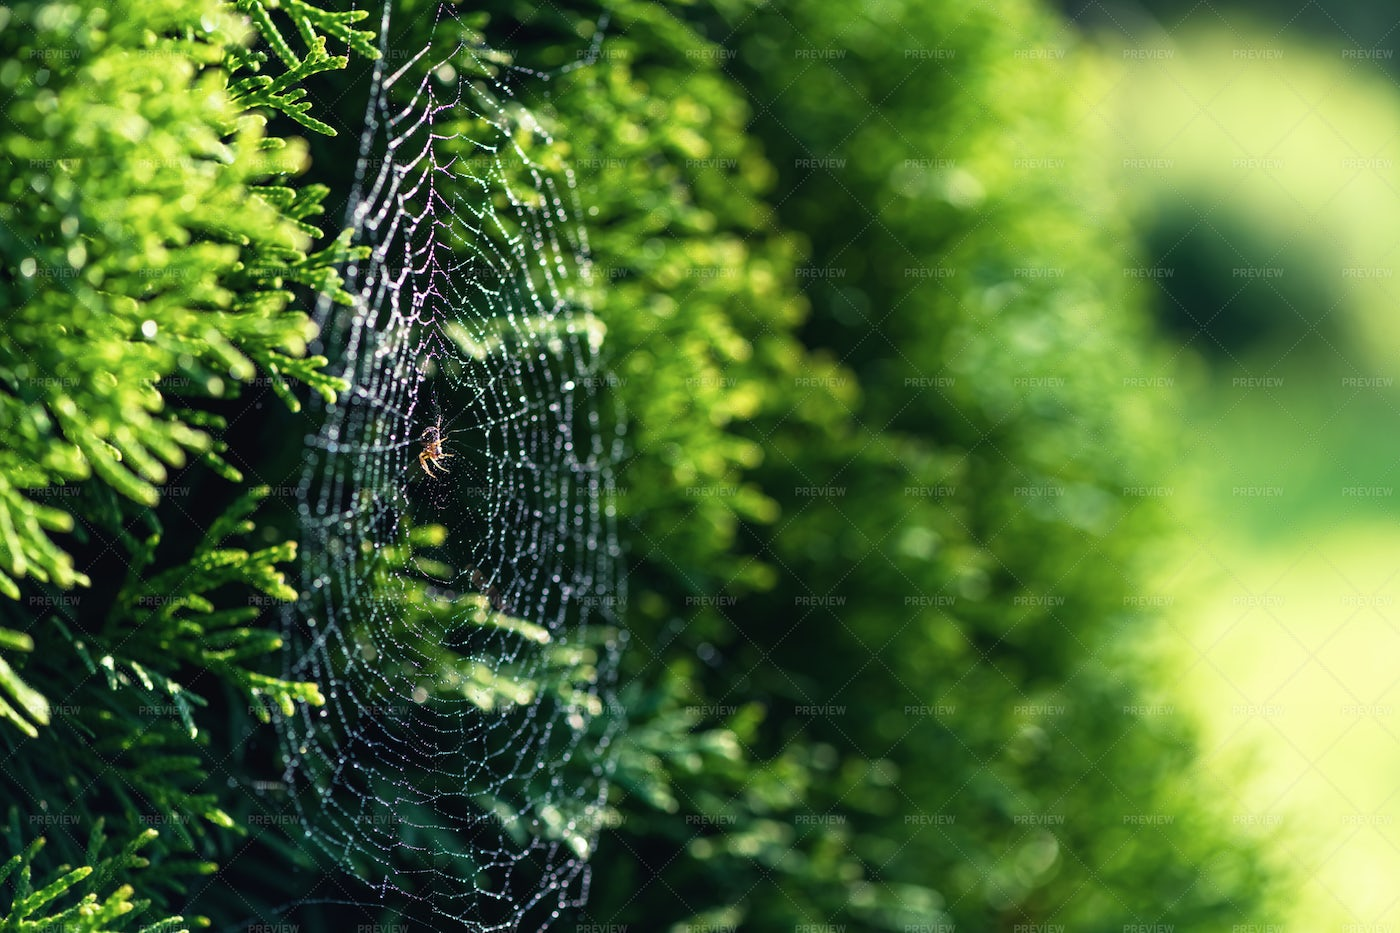 Spider Web In Nature: Stock Photos